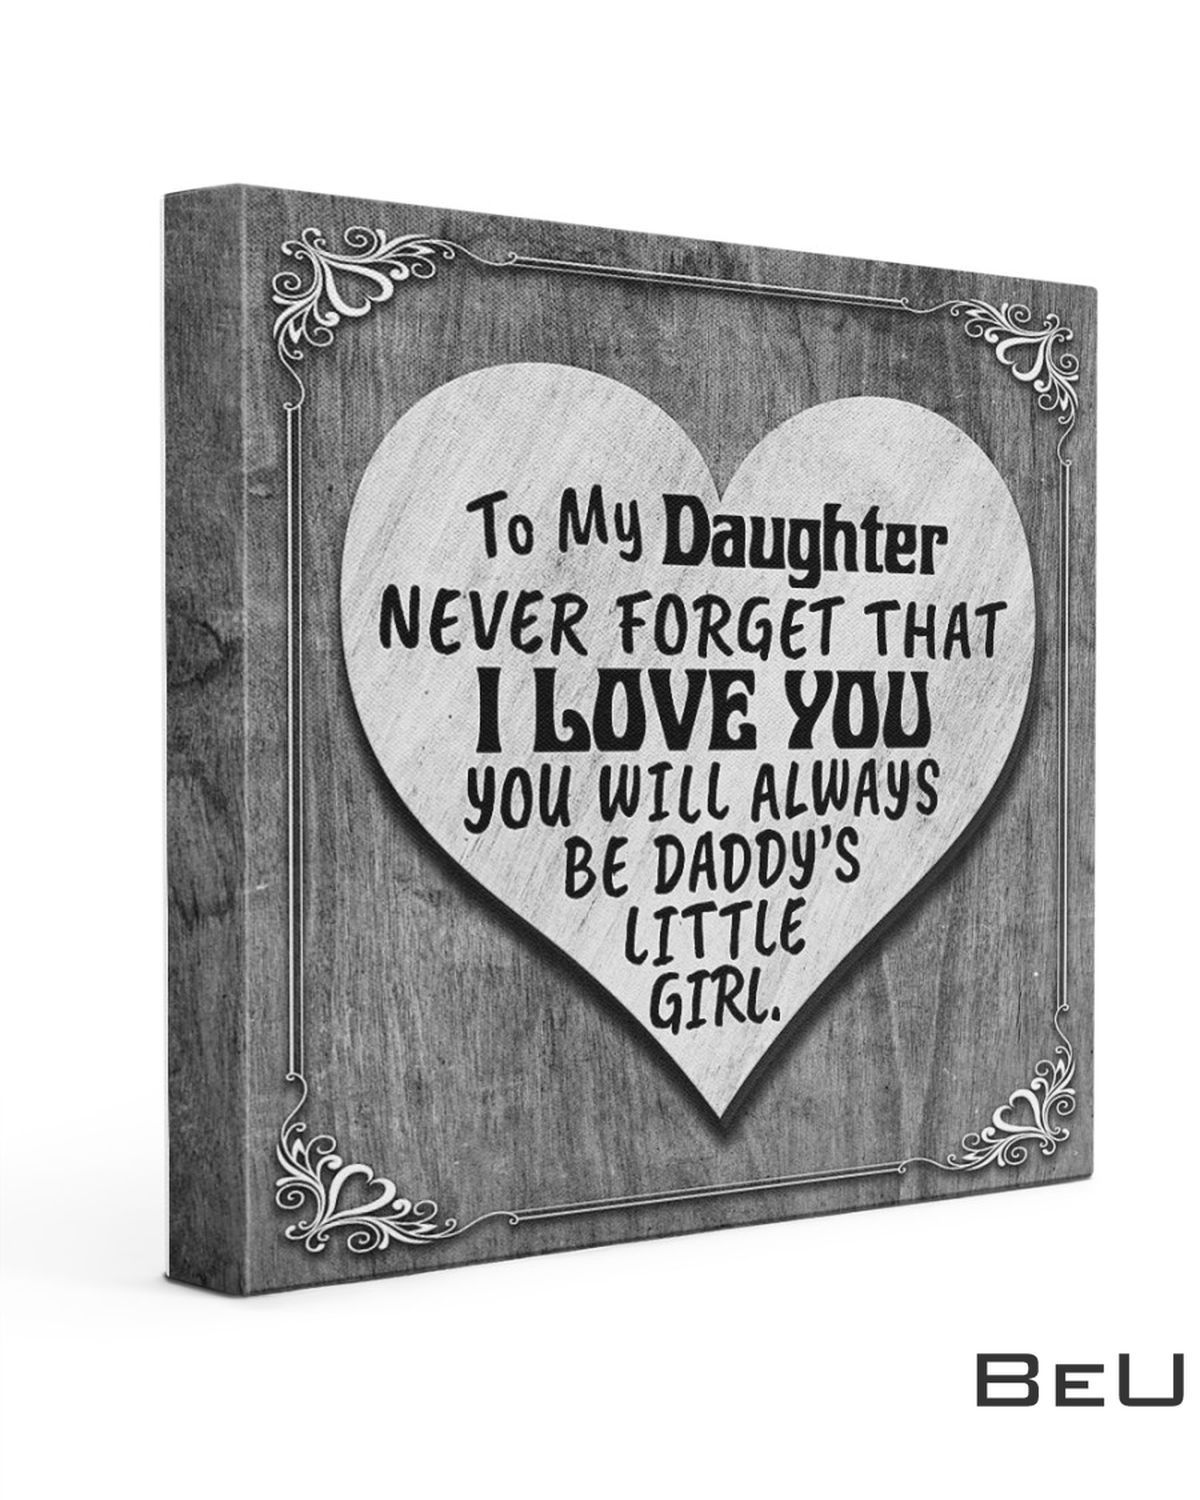 To My Daughter Never Forget That I Love You You Will Always Be Daddy's Little Girl Canvas